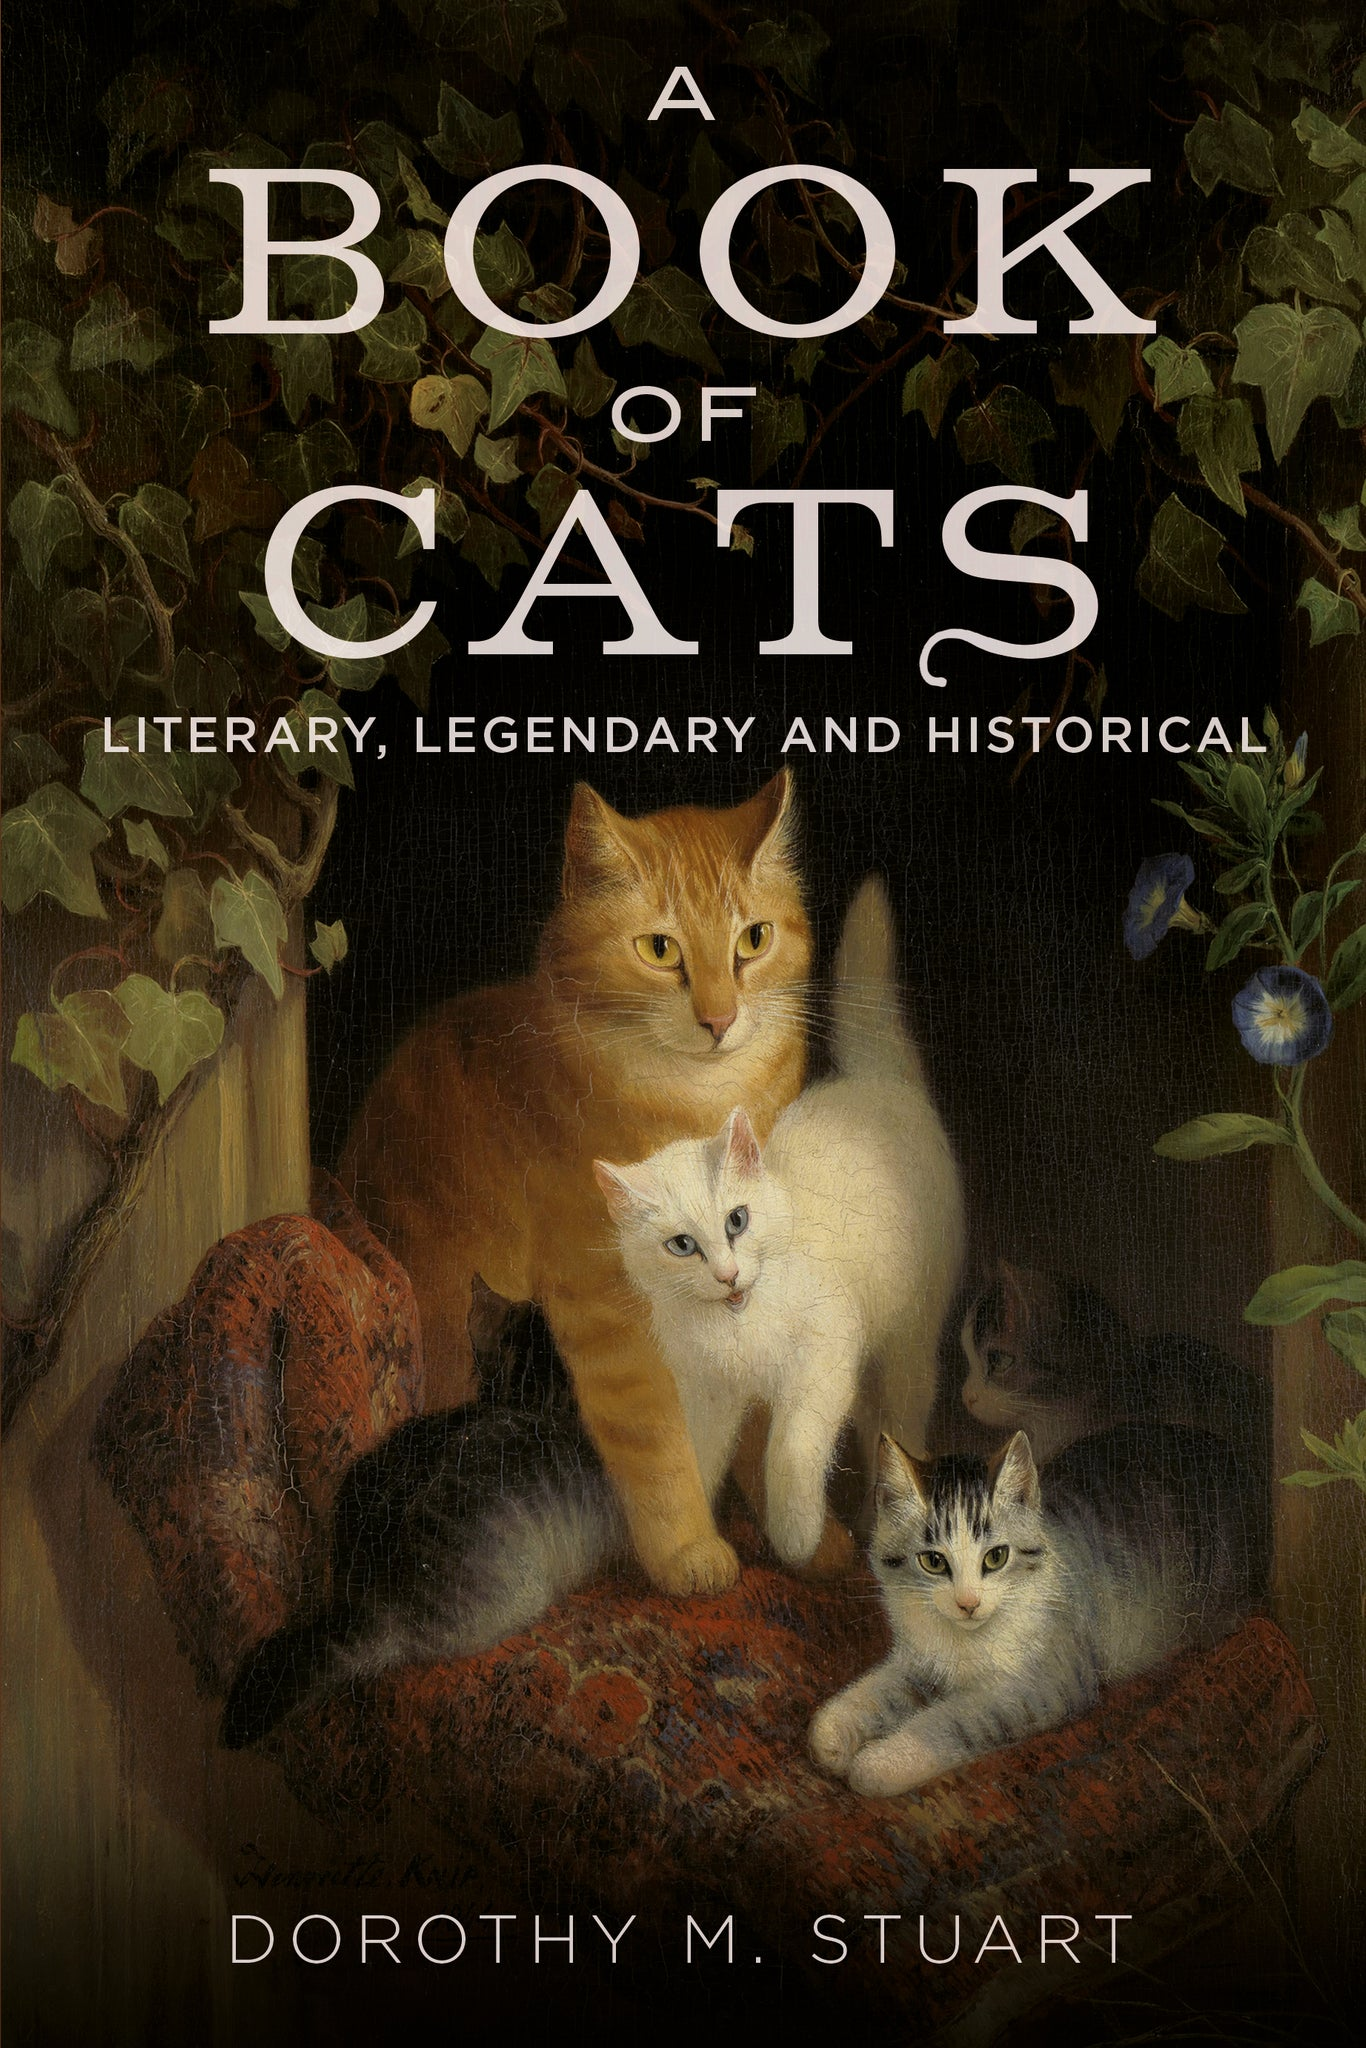 A Book of Cats: Literary, Legendary and Historical - available now from Fonthill Media